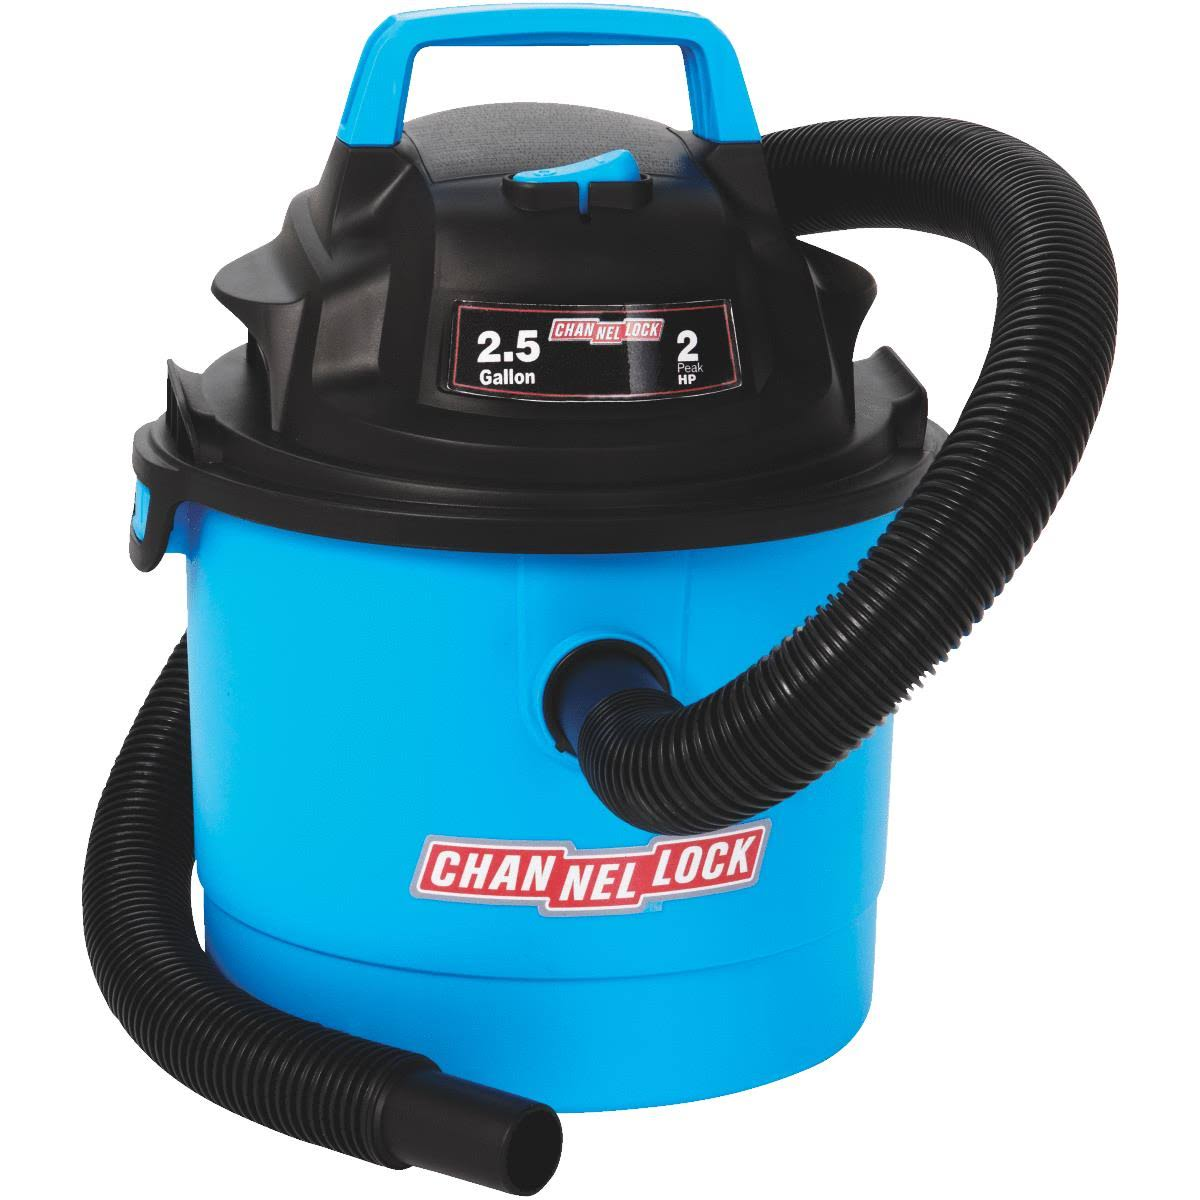 Channellock Wet / Dry Vacuum - 2.5gal